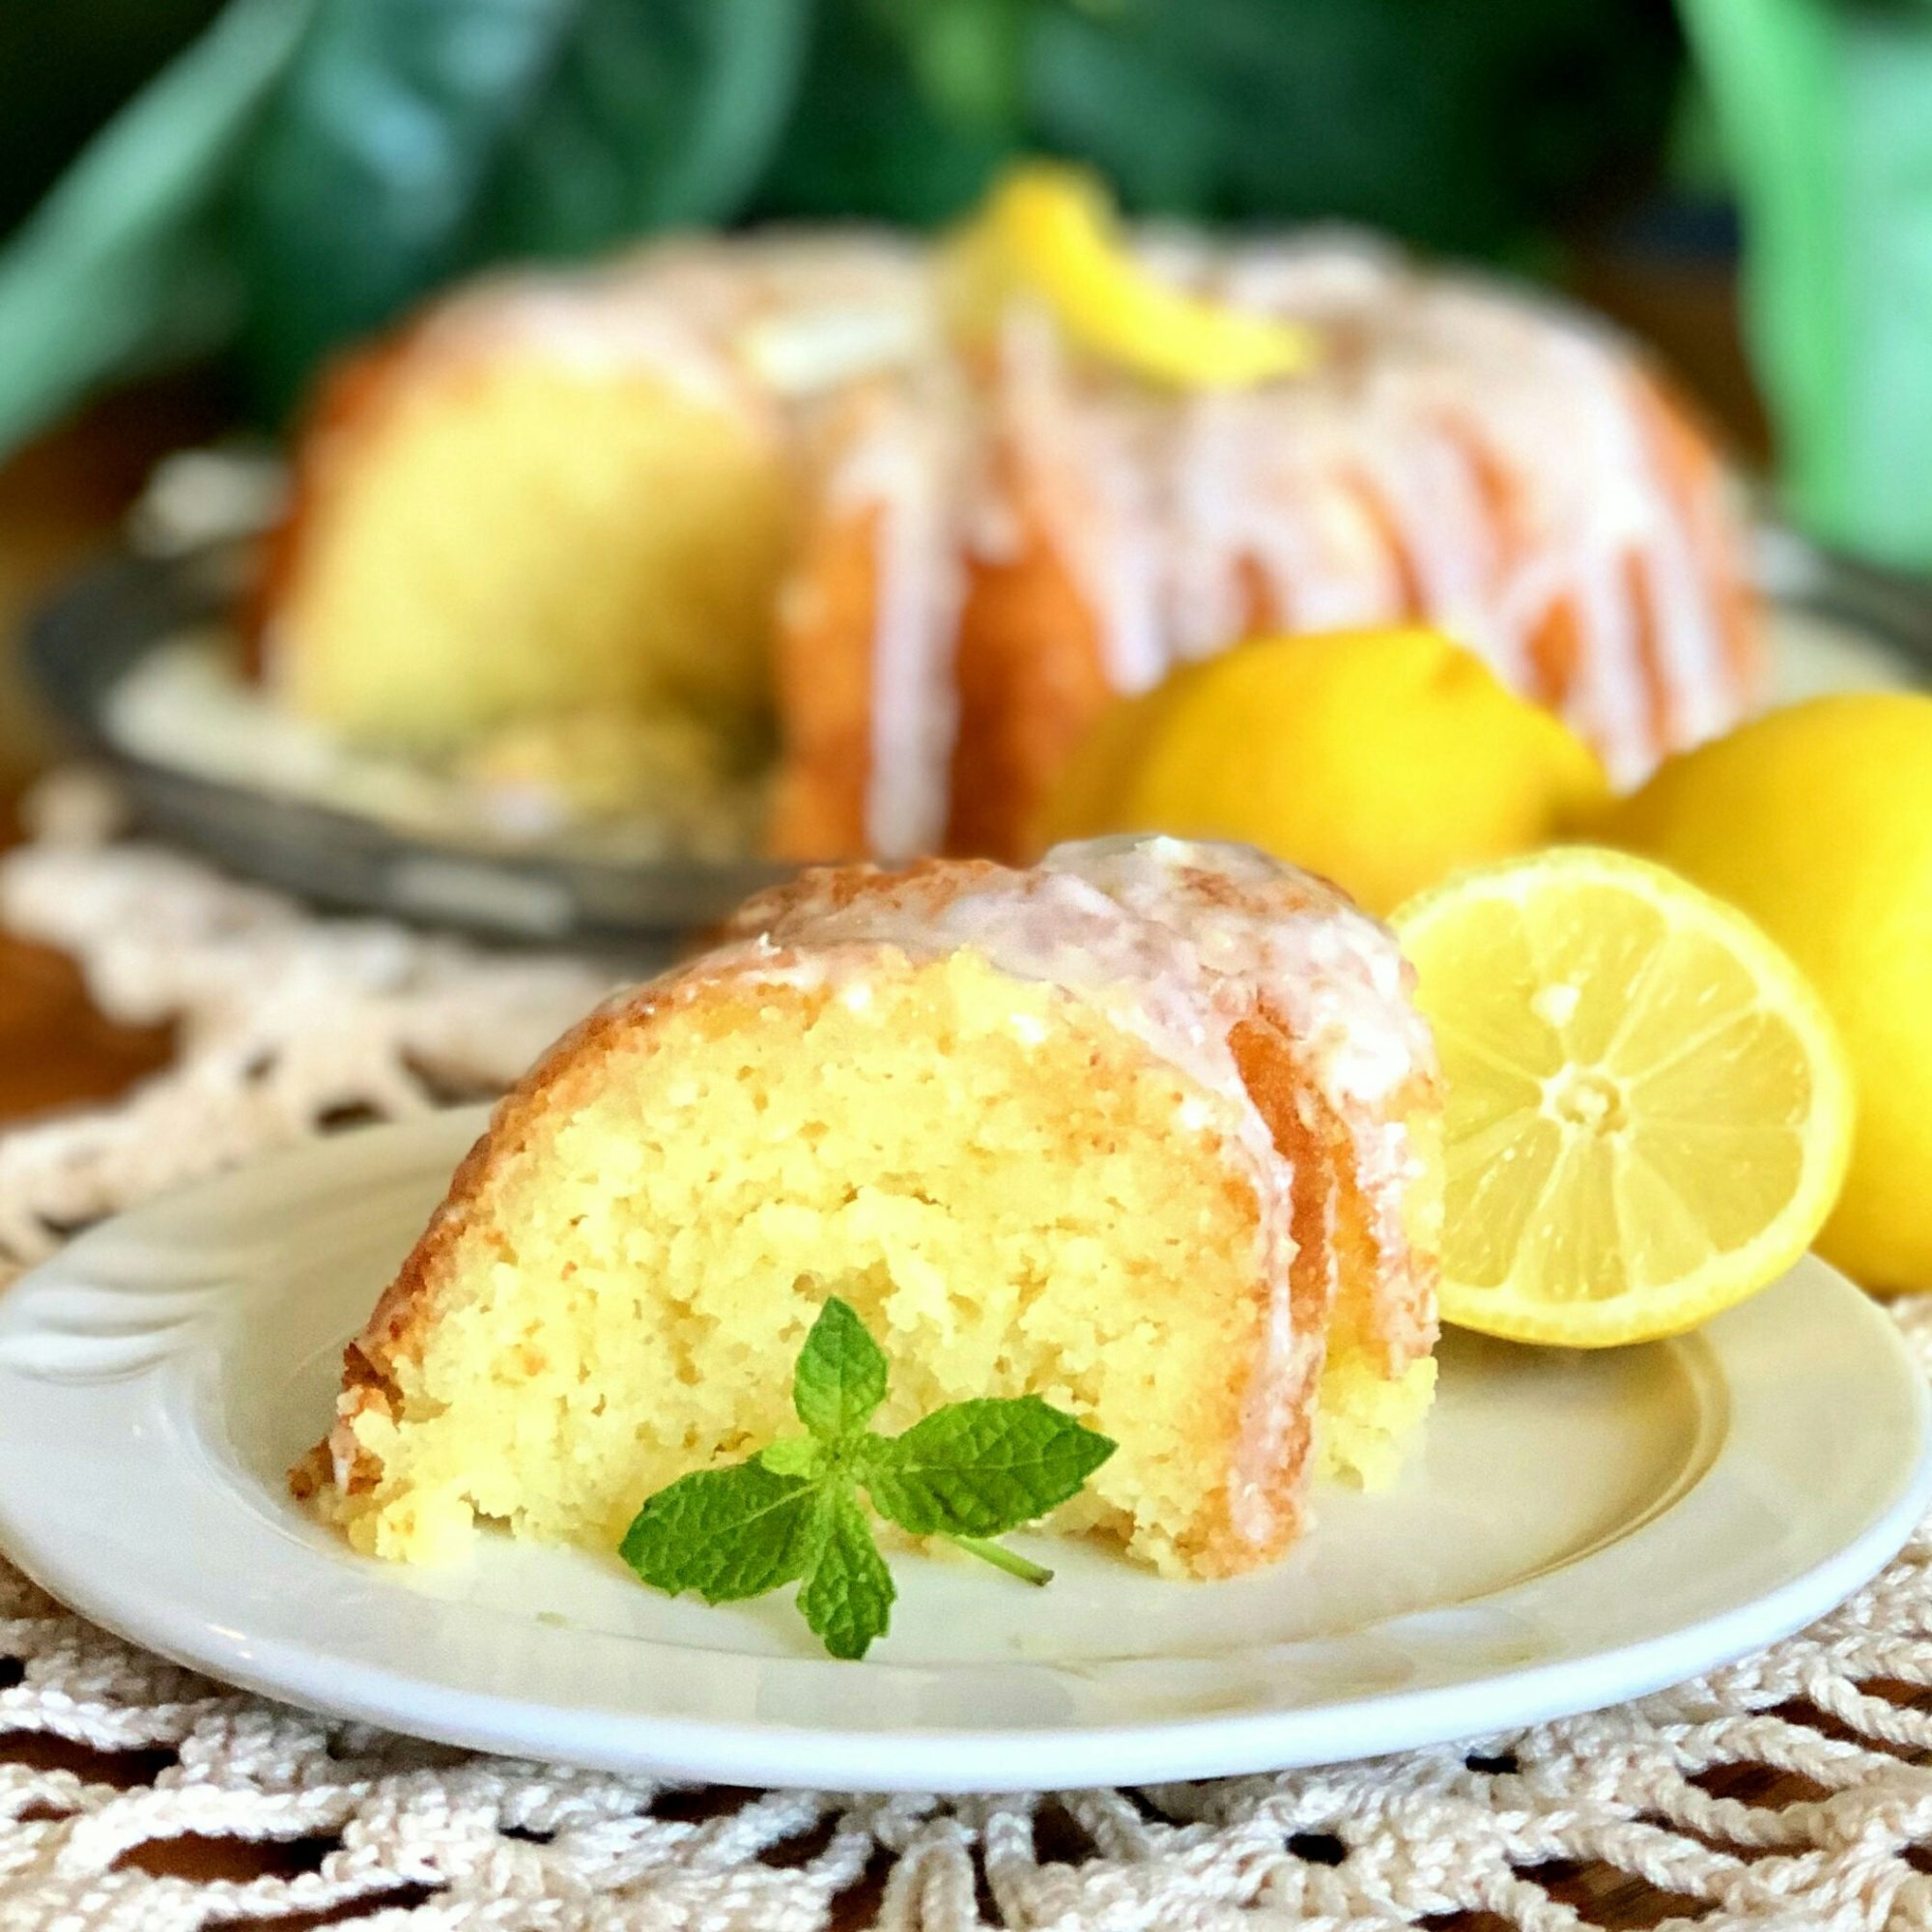 a slice of lemon ricotta cake with the whole cake in the background